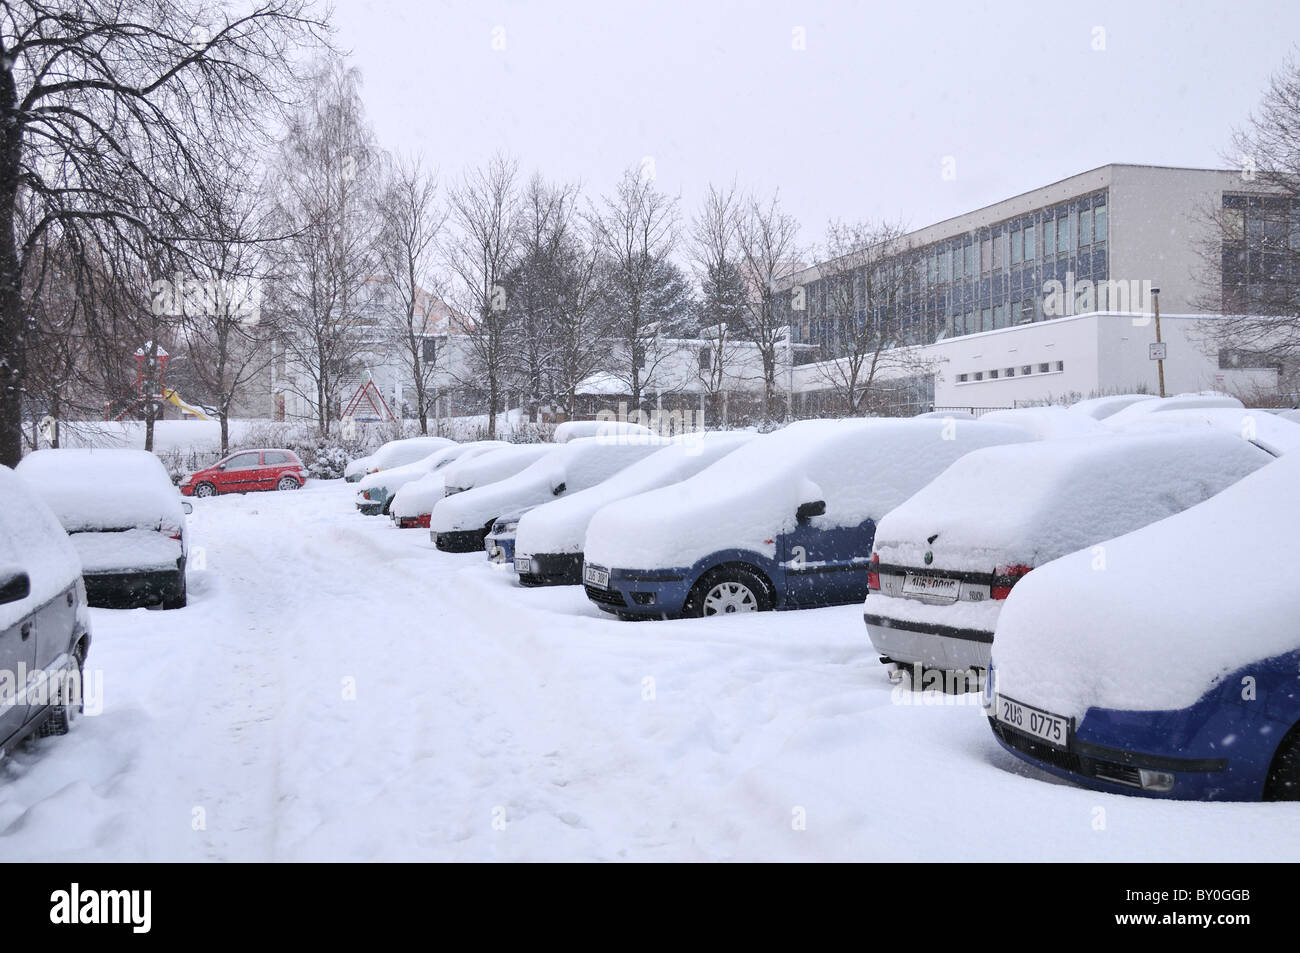 Snow covered cars - dangerous road conditions - Stock Image